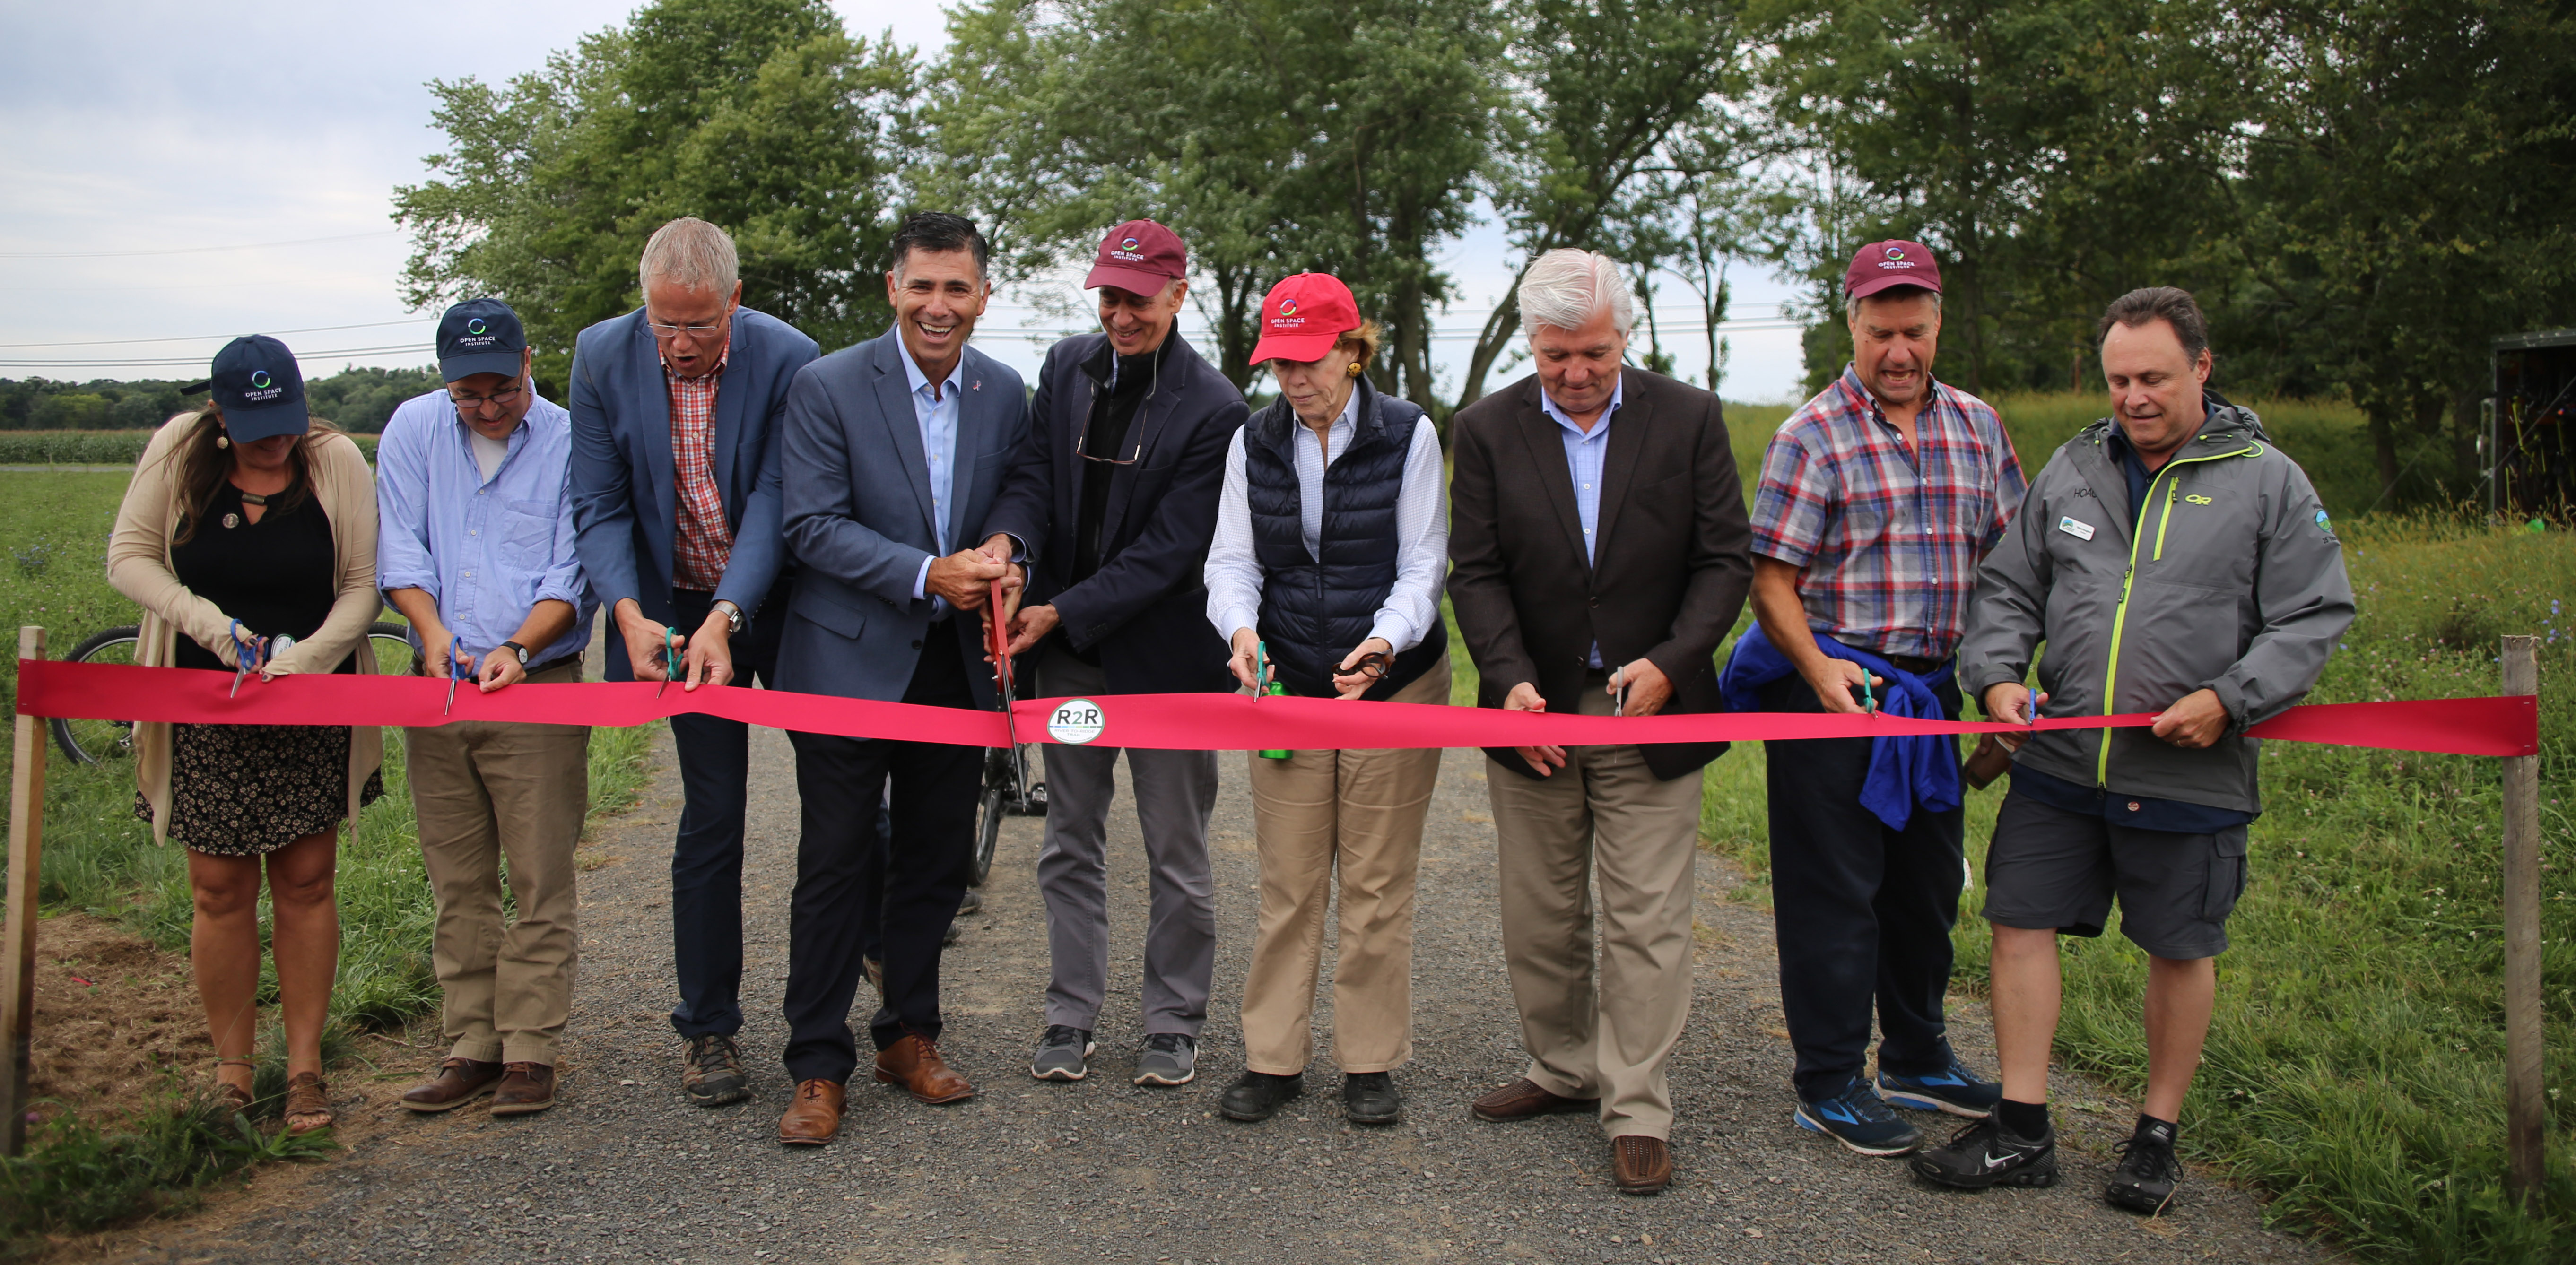 In Sep. 2018, OSI officially opened the River-to-Ridge Trail, connecting downtown New Paltz with 90 miles of trails in Minnewaska State Park Preserve and Mohonk Preserve.